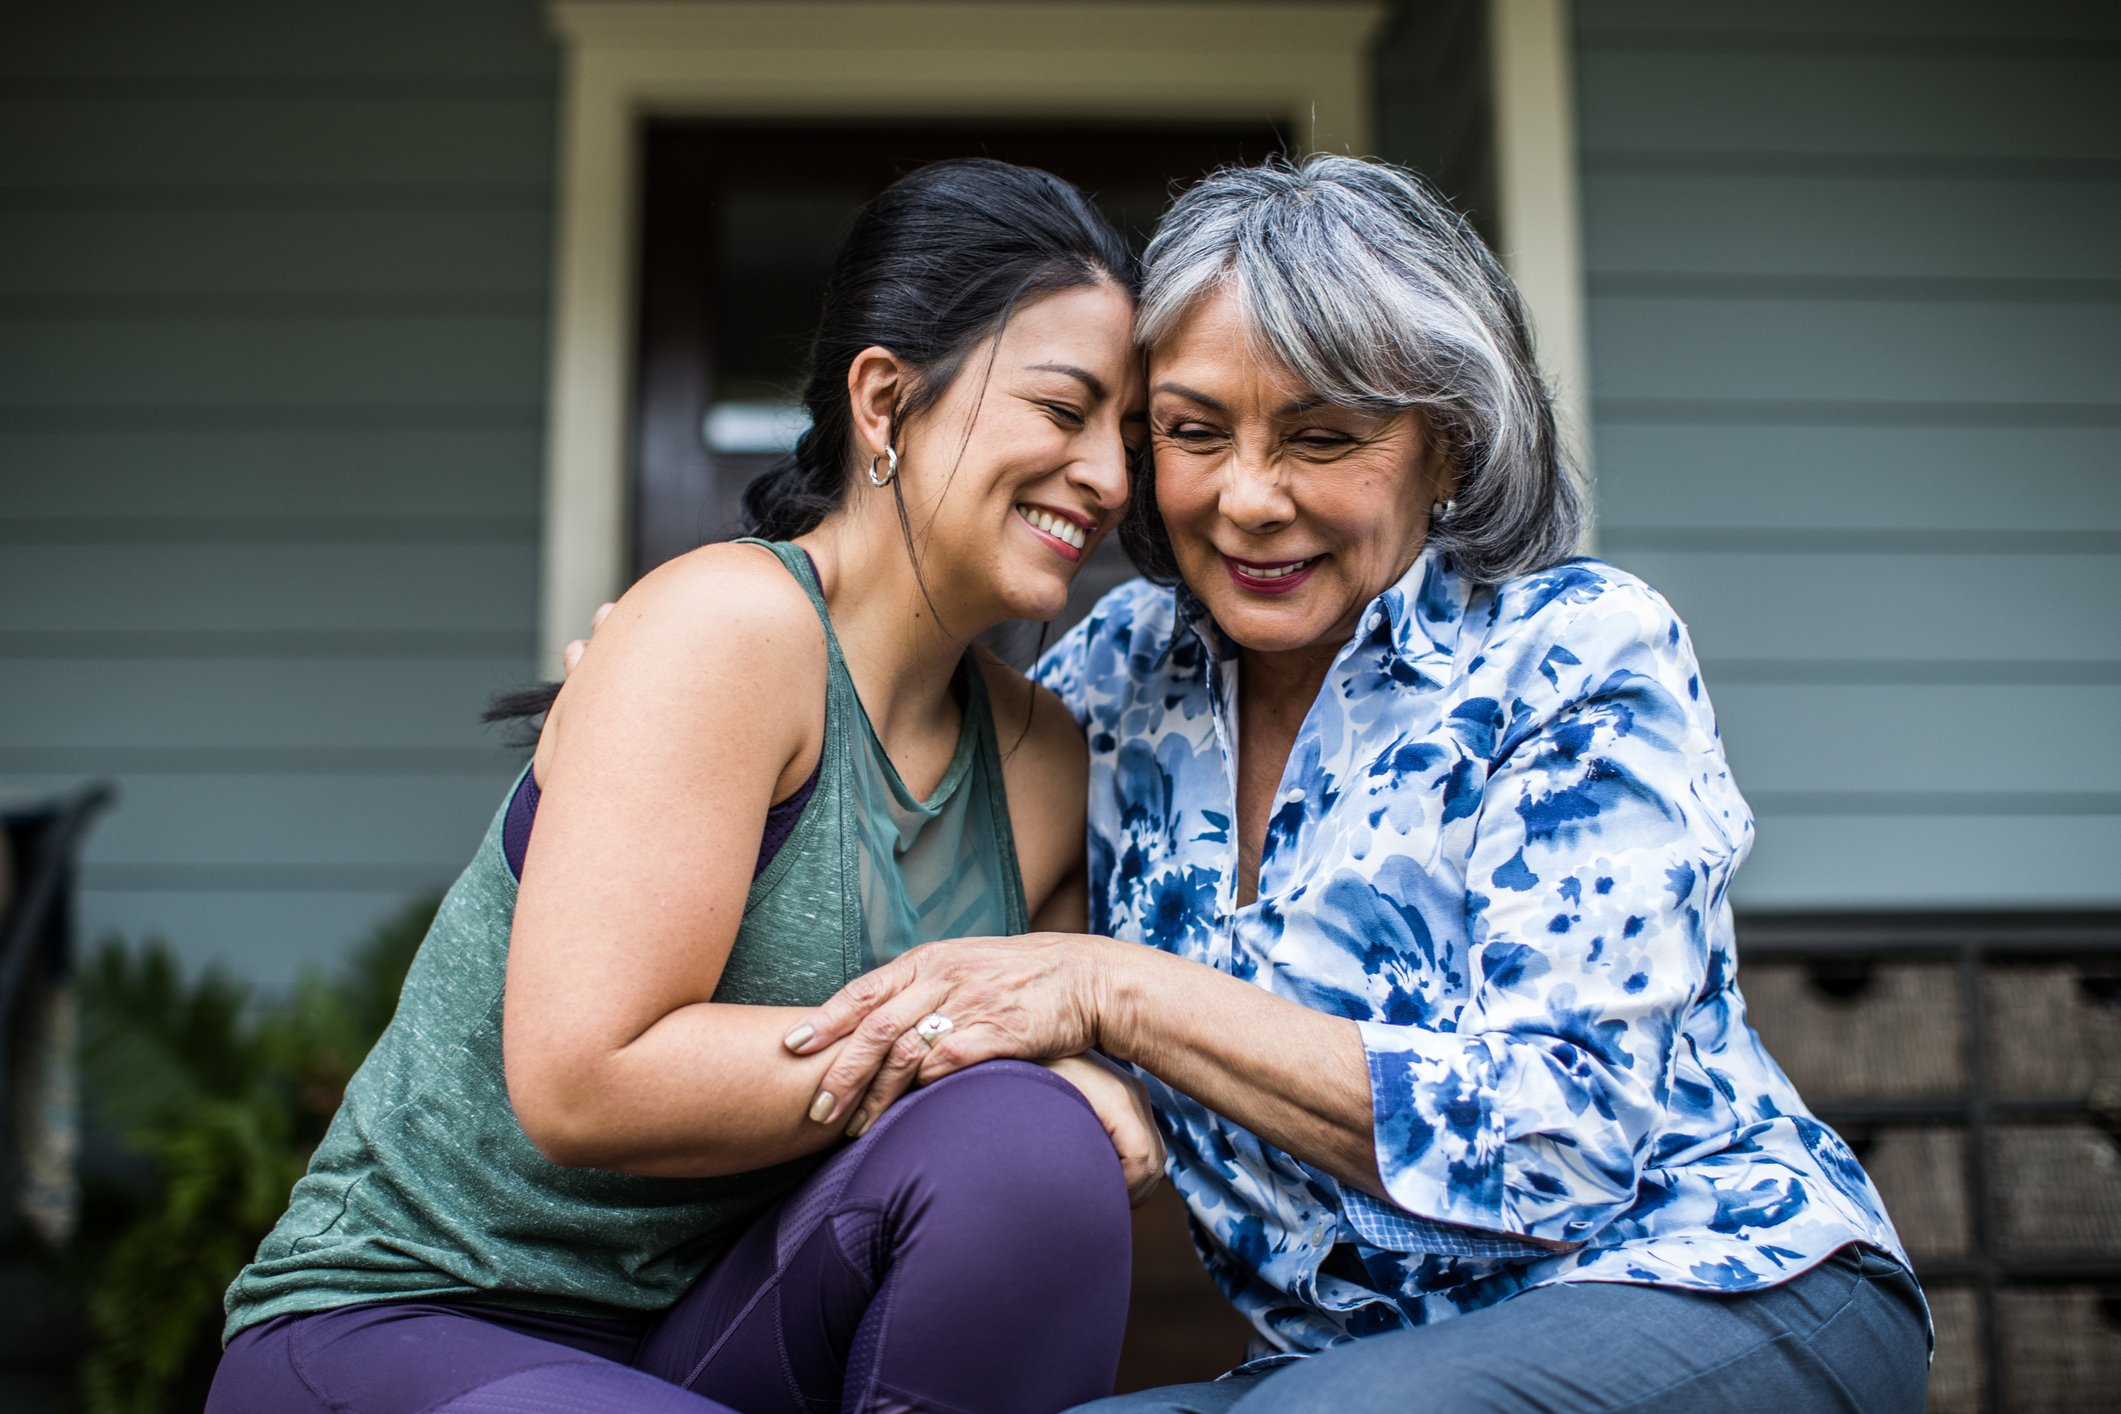 An older woman and her adult daughter laughing and hugging each other on the porch. | Source: Getty Images